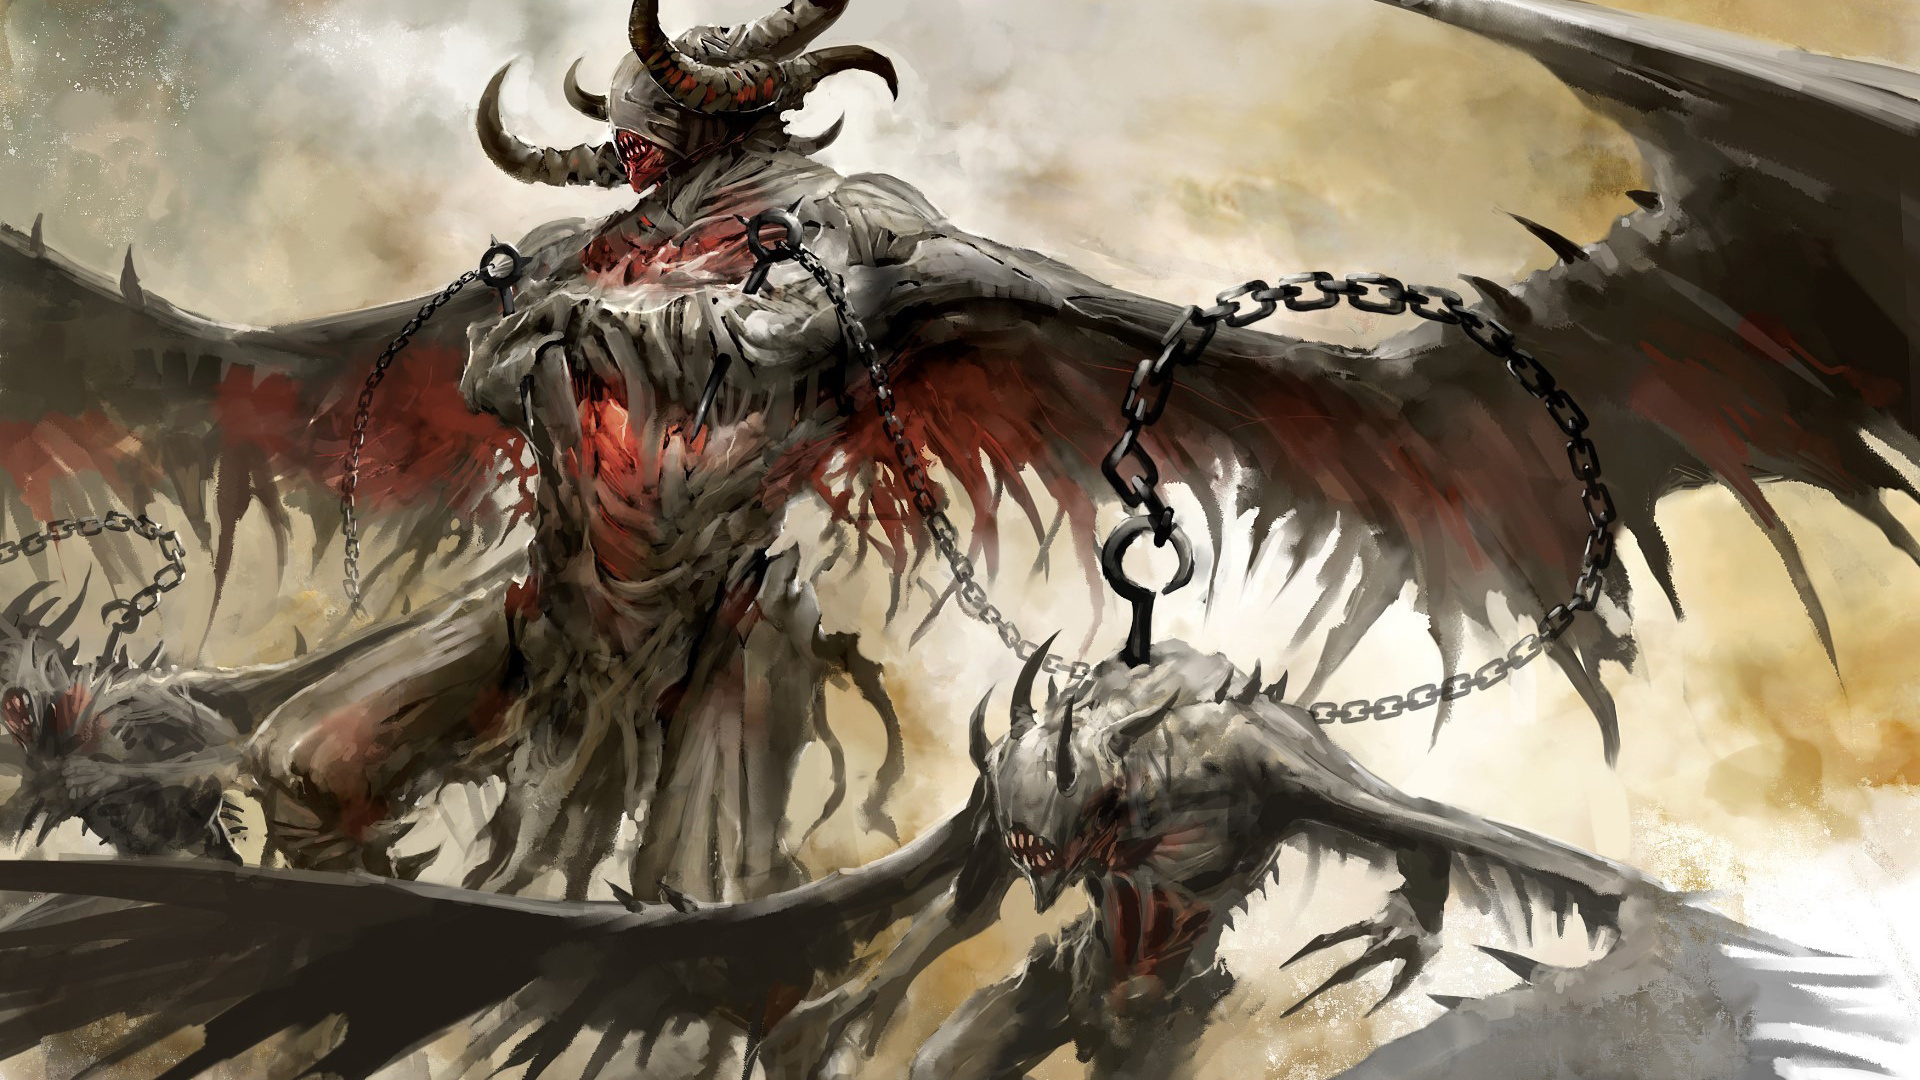 269 demon hd wallpapers background images wallpaper abyss page 8 voltagebd Images